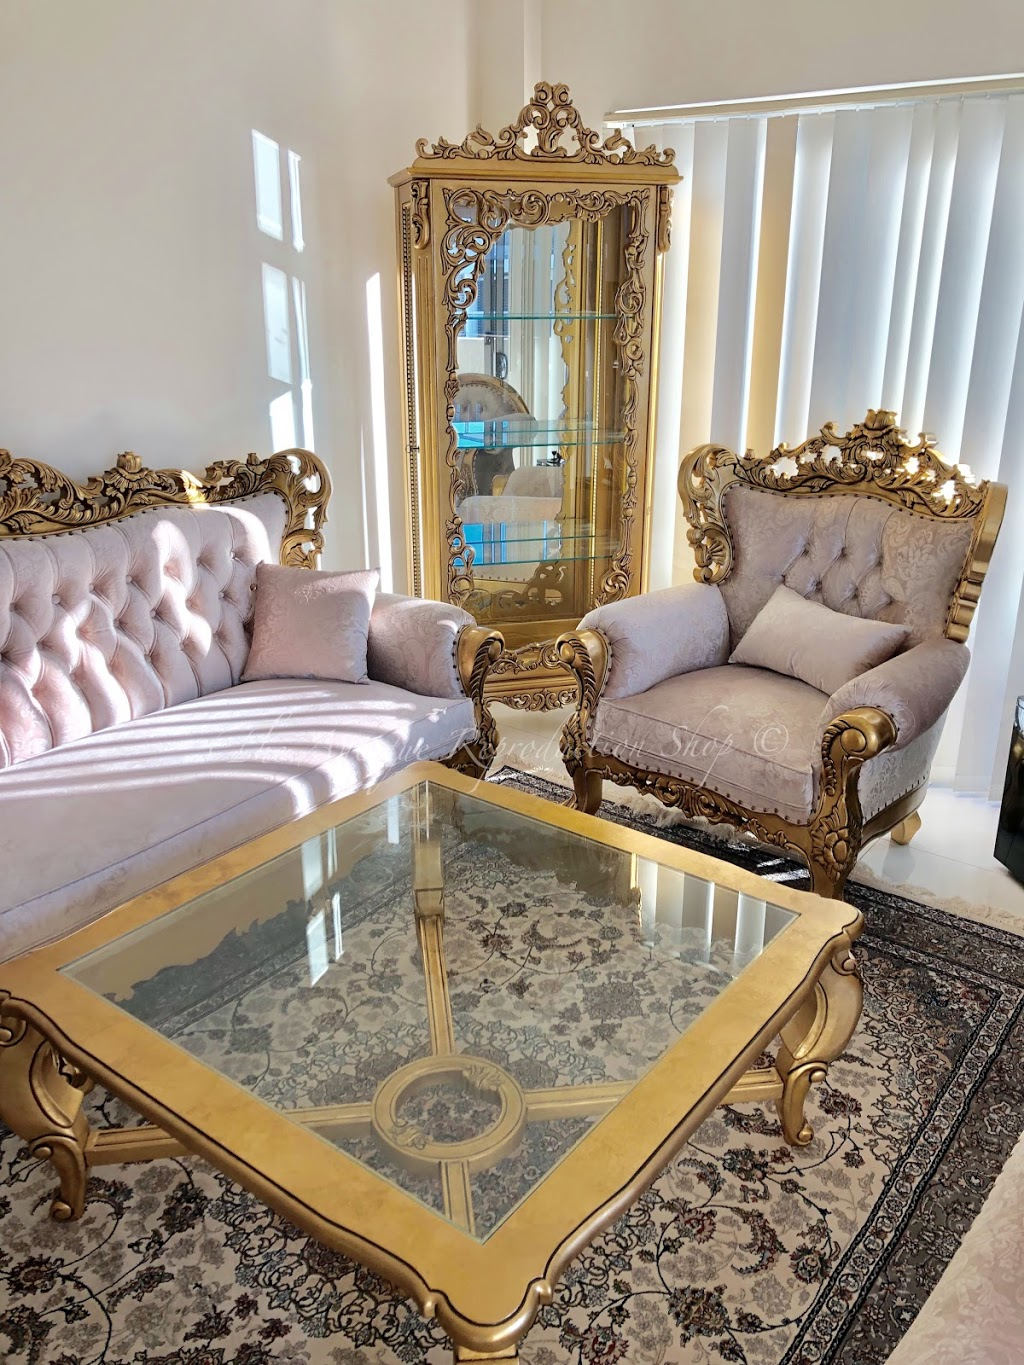 The Antique Reproduction Shop - Luxury Antique Furniture Store | furniture store | 20 66/74 Brice Ave, Mooroolbark VIC 3138, Australia | 0397369490 OR +61 3 9736 9490